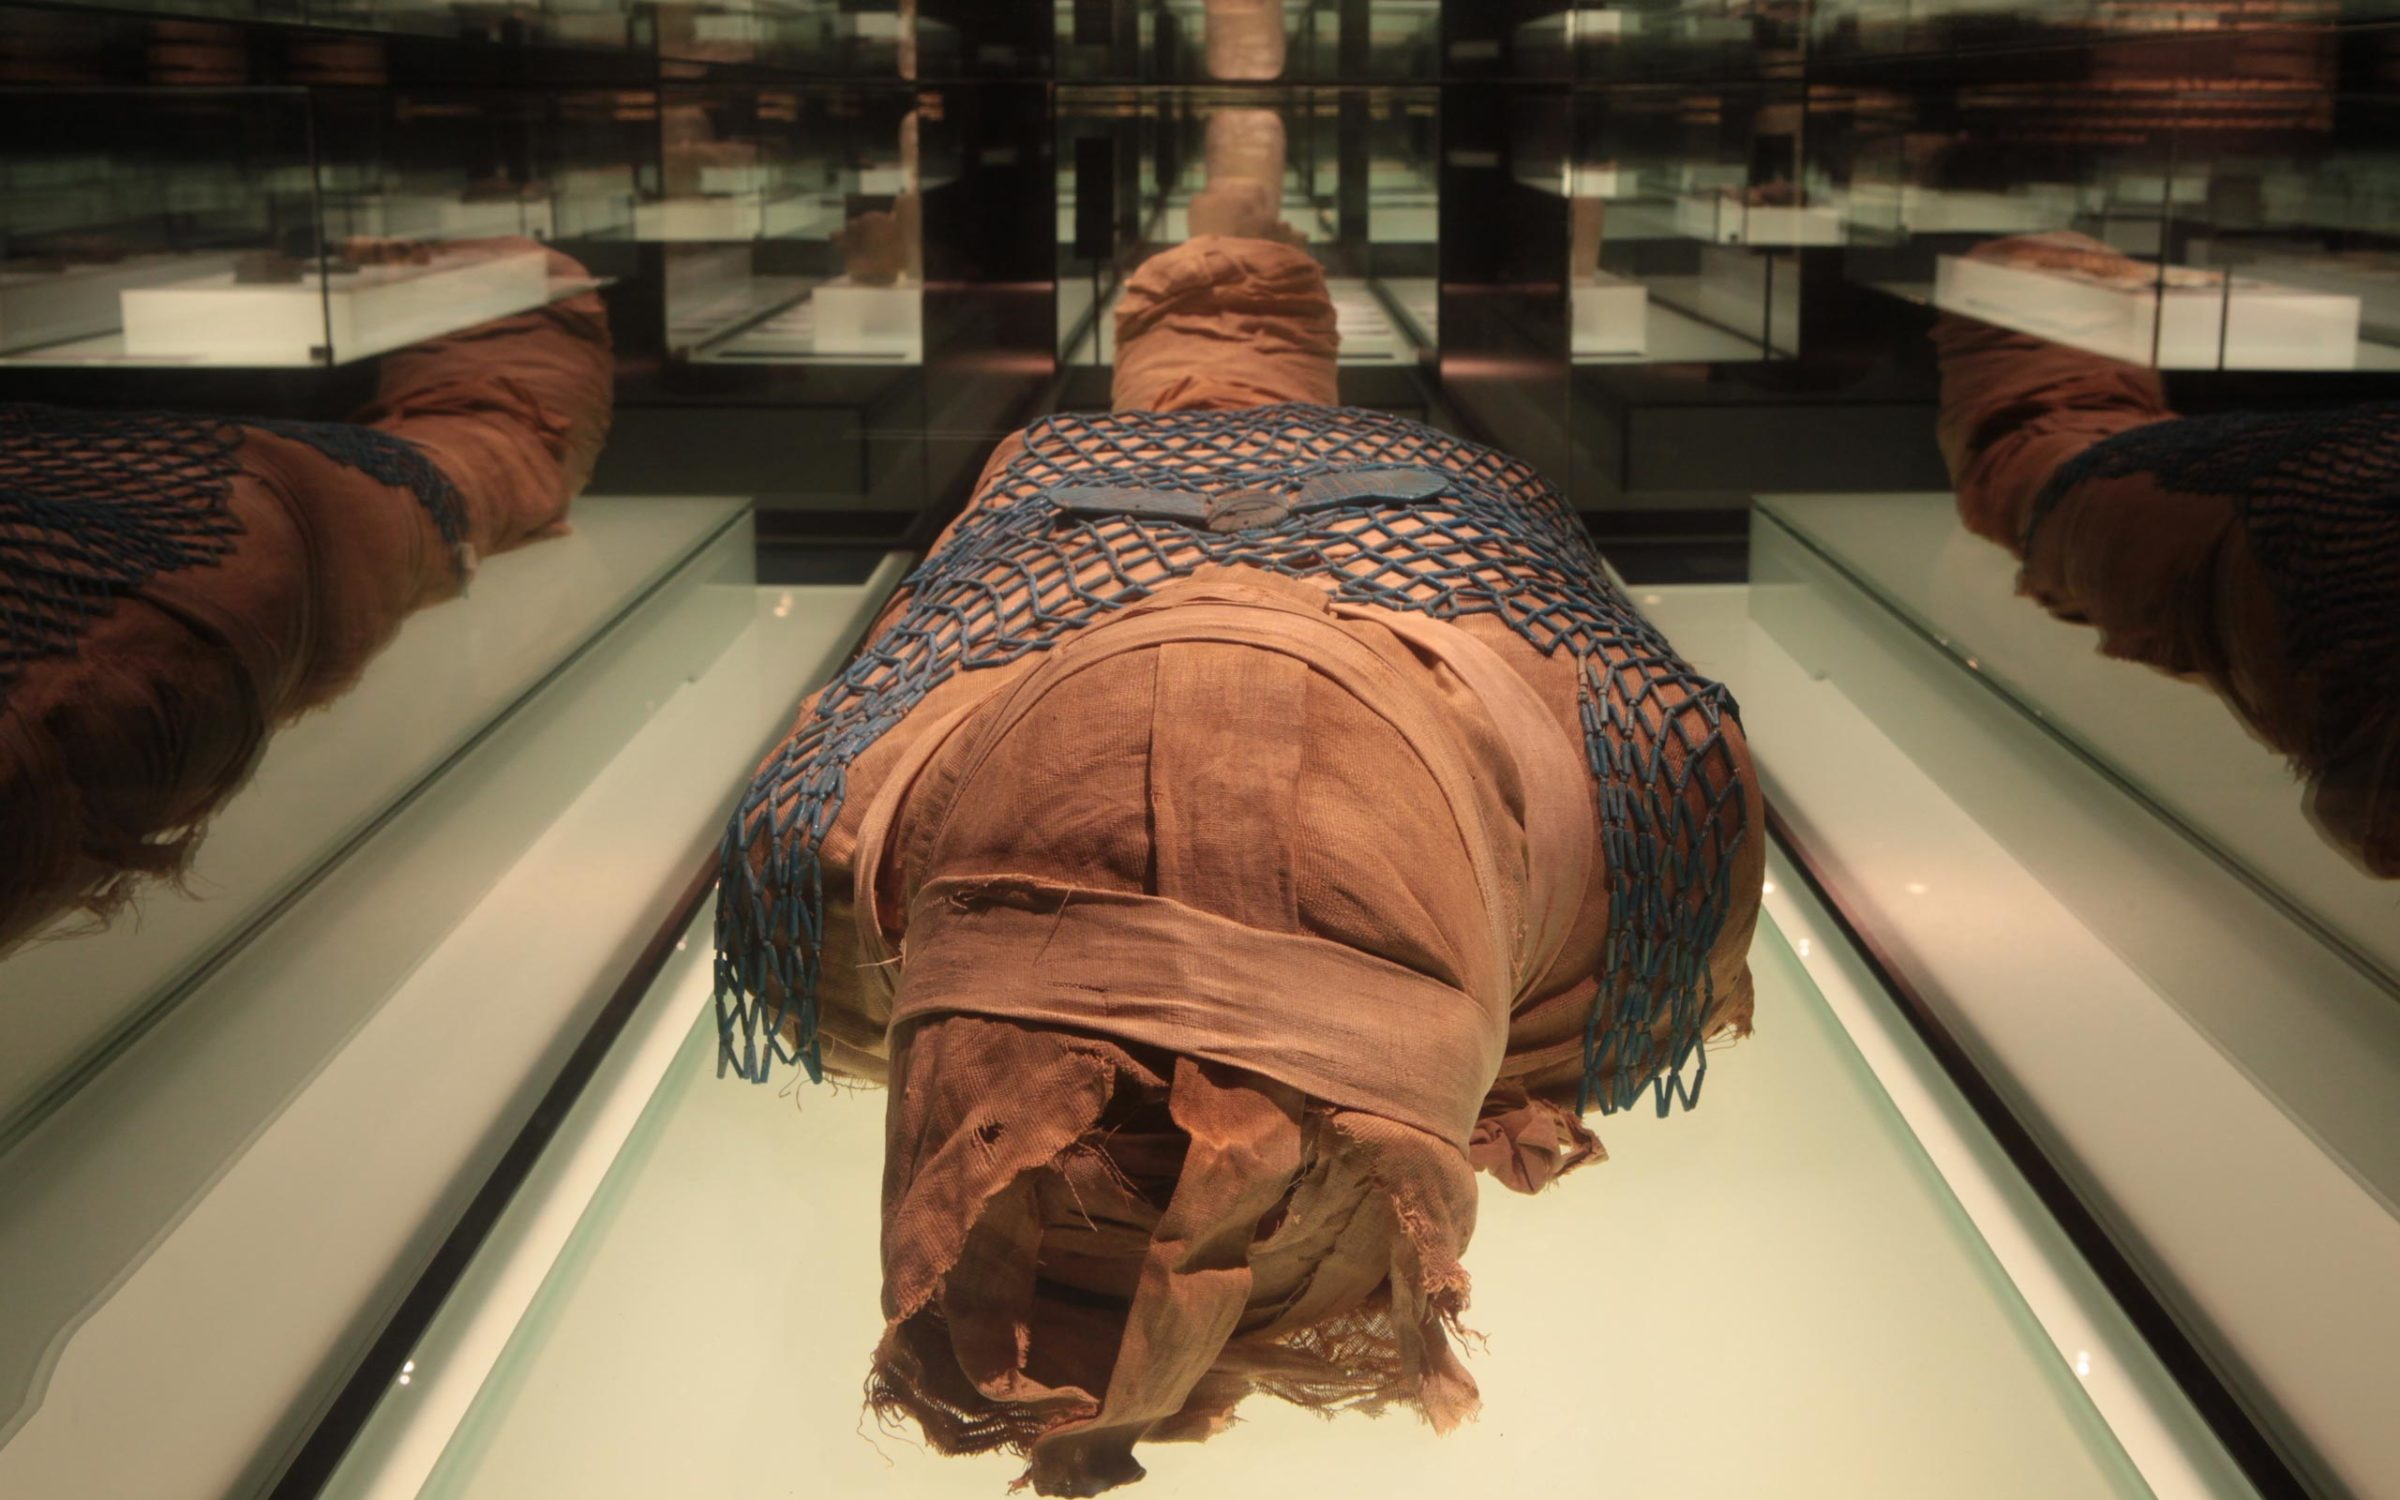 The Enigma of the Mummy